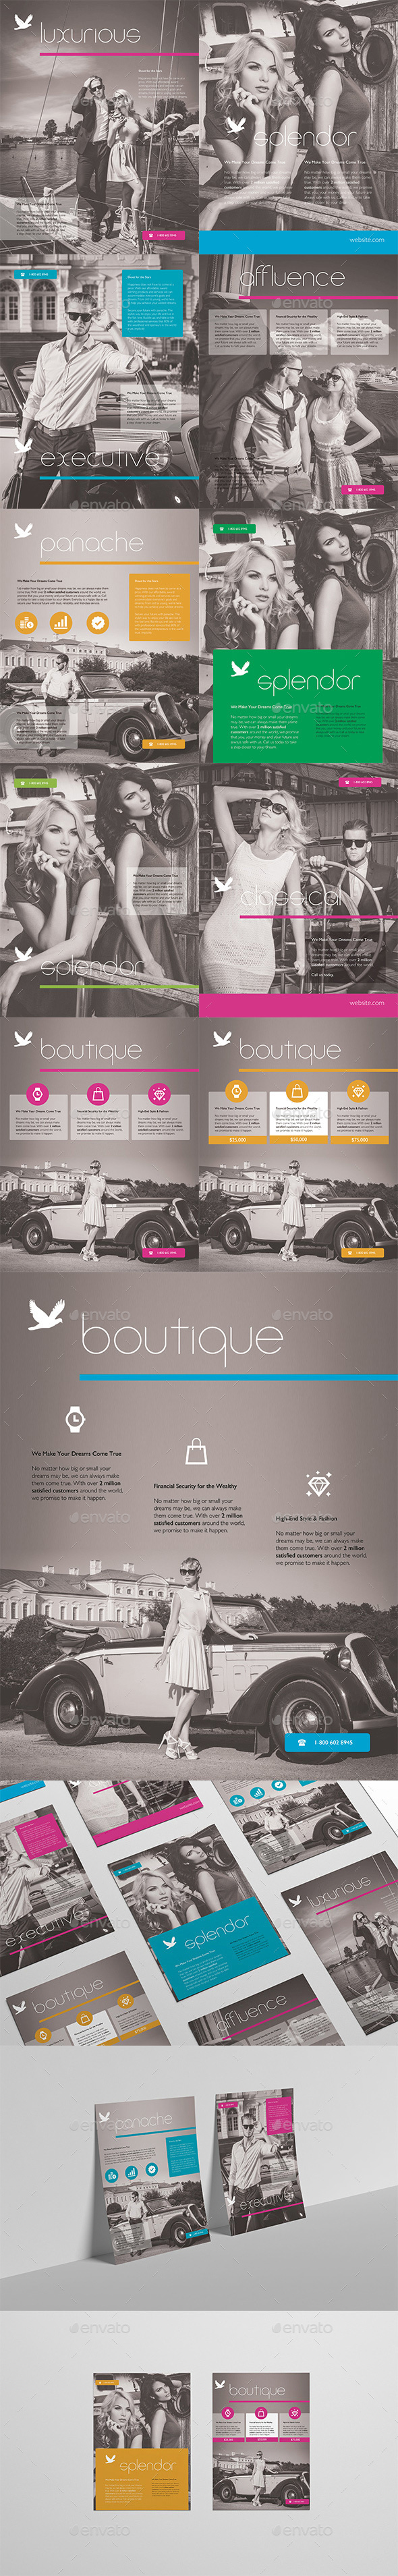 Professional Luxury Flyers & Adverts - Commerce Flyers